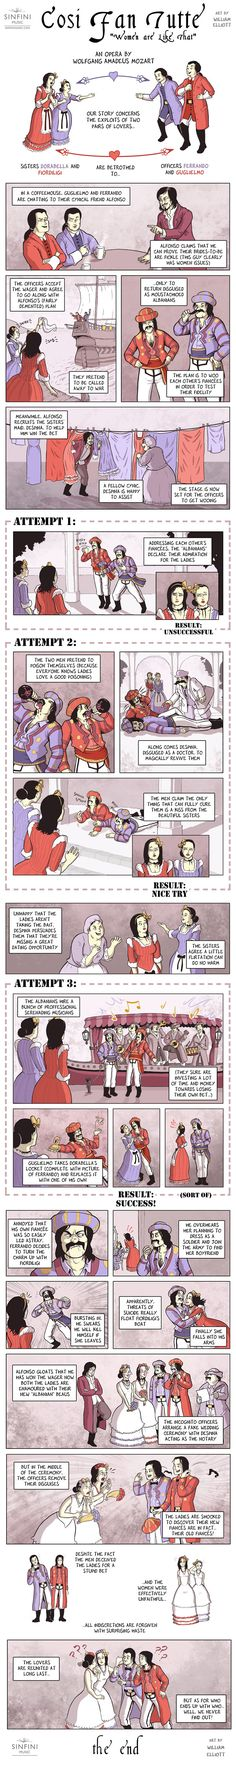 "Cosi Fan Tutte ""Women are Like That"": An Opera by Wolfgang Amadeus Mozart. Opera Comic Strip Art by William Elliott"